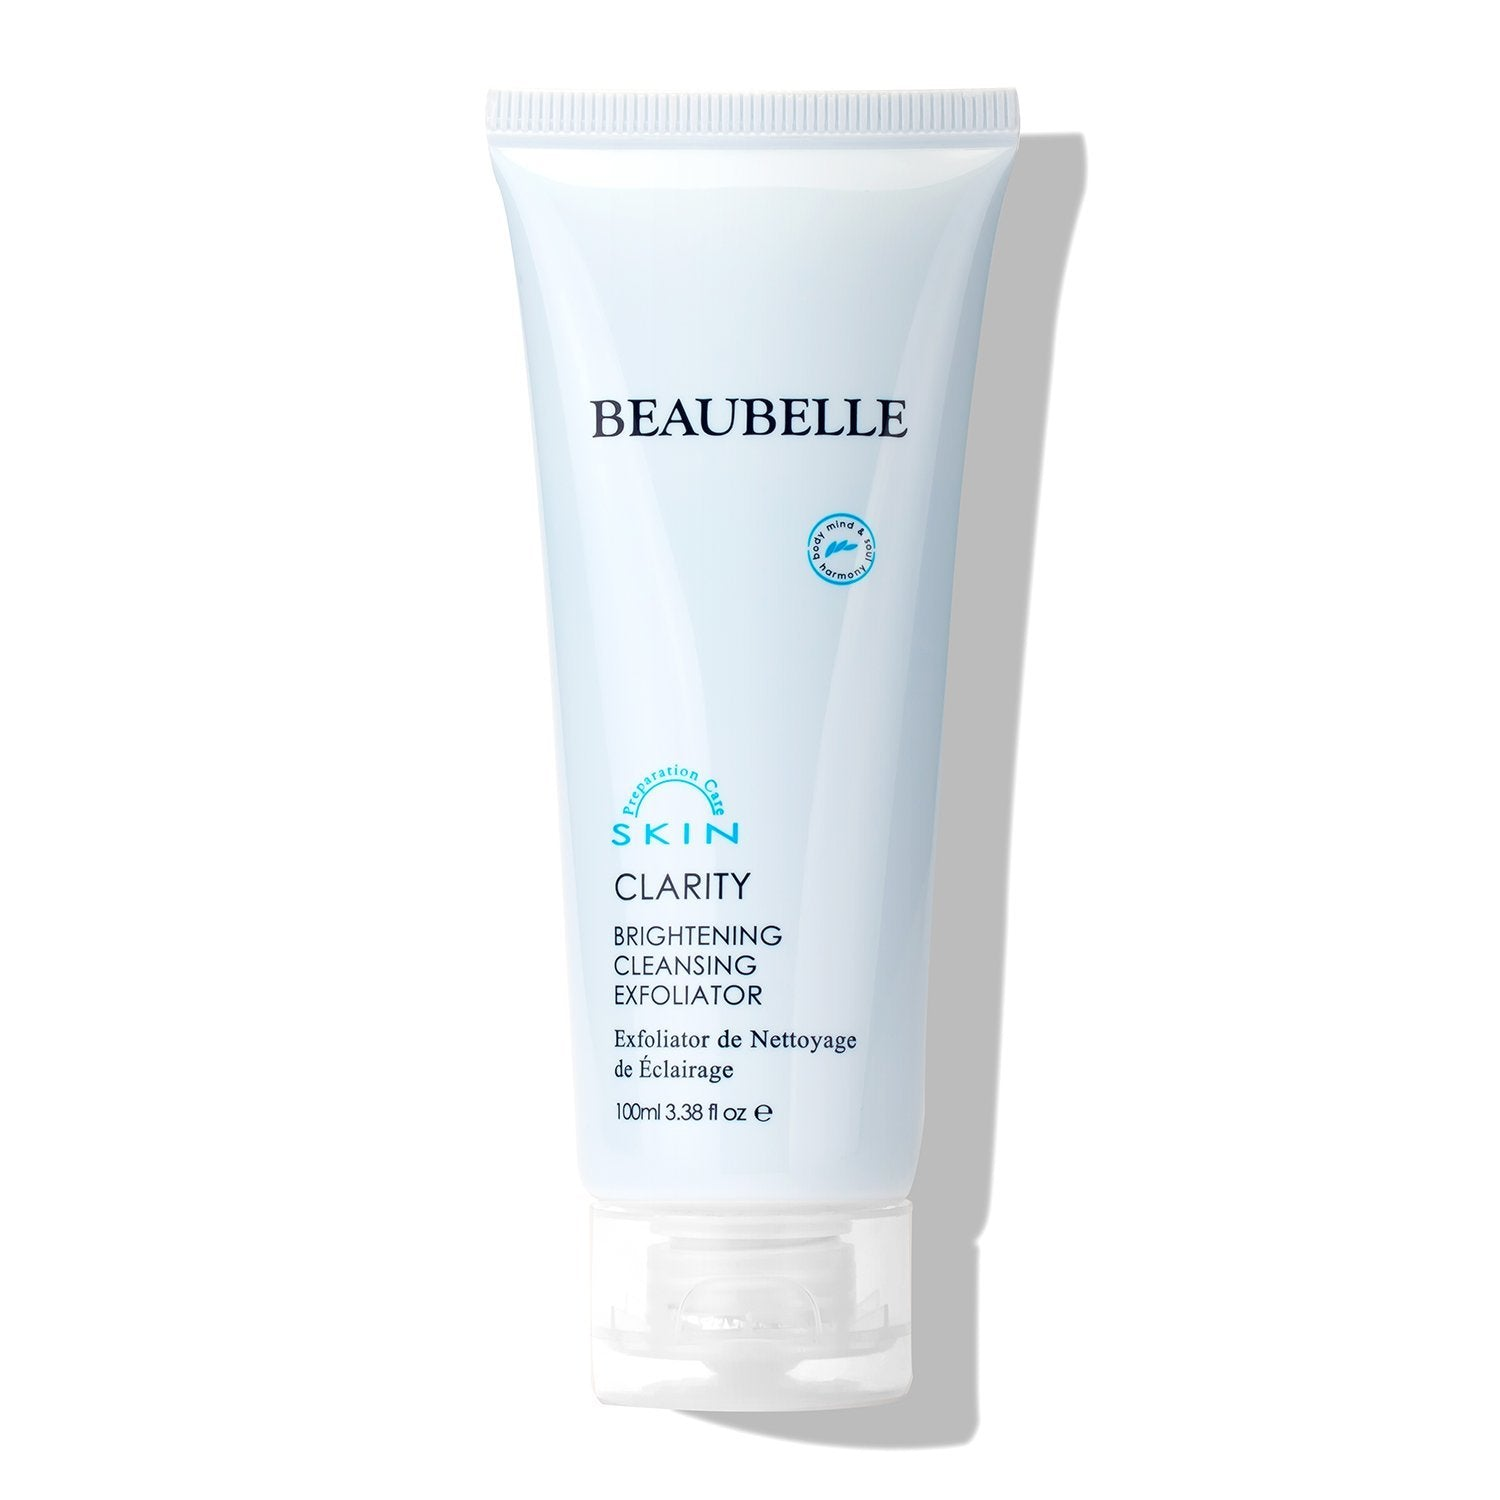 Clarity Brightening Cleansing Exfoliator